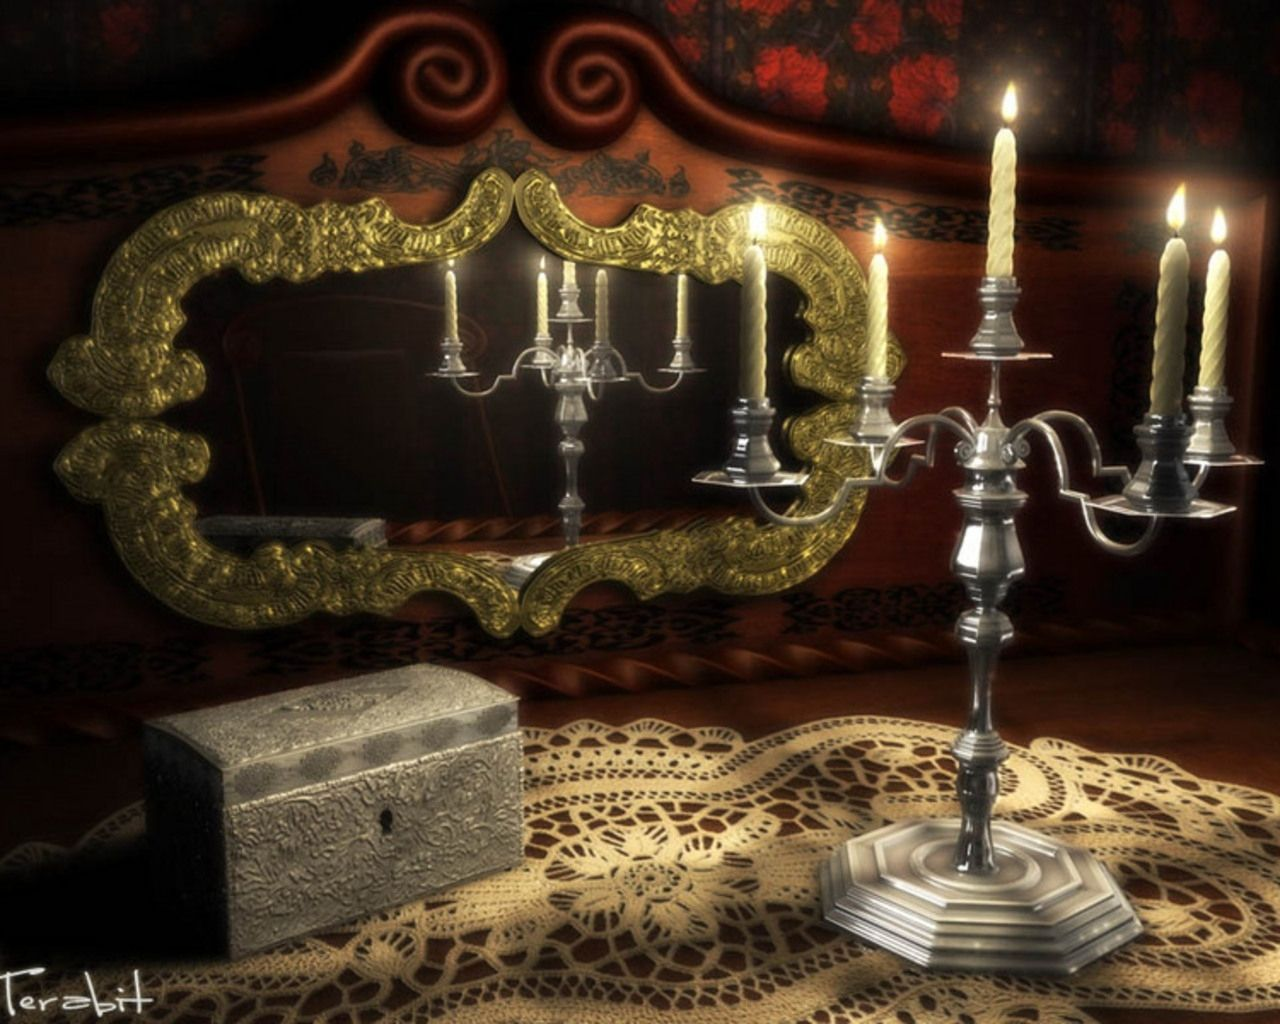 Design Gothic Candles gothic romance candles wallpaper chandeliers wallpaper